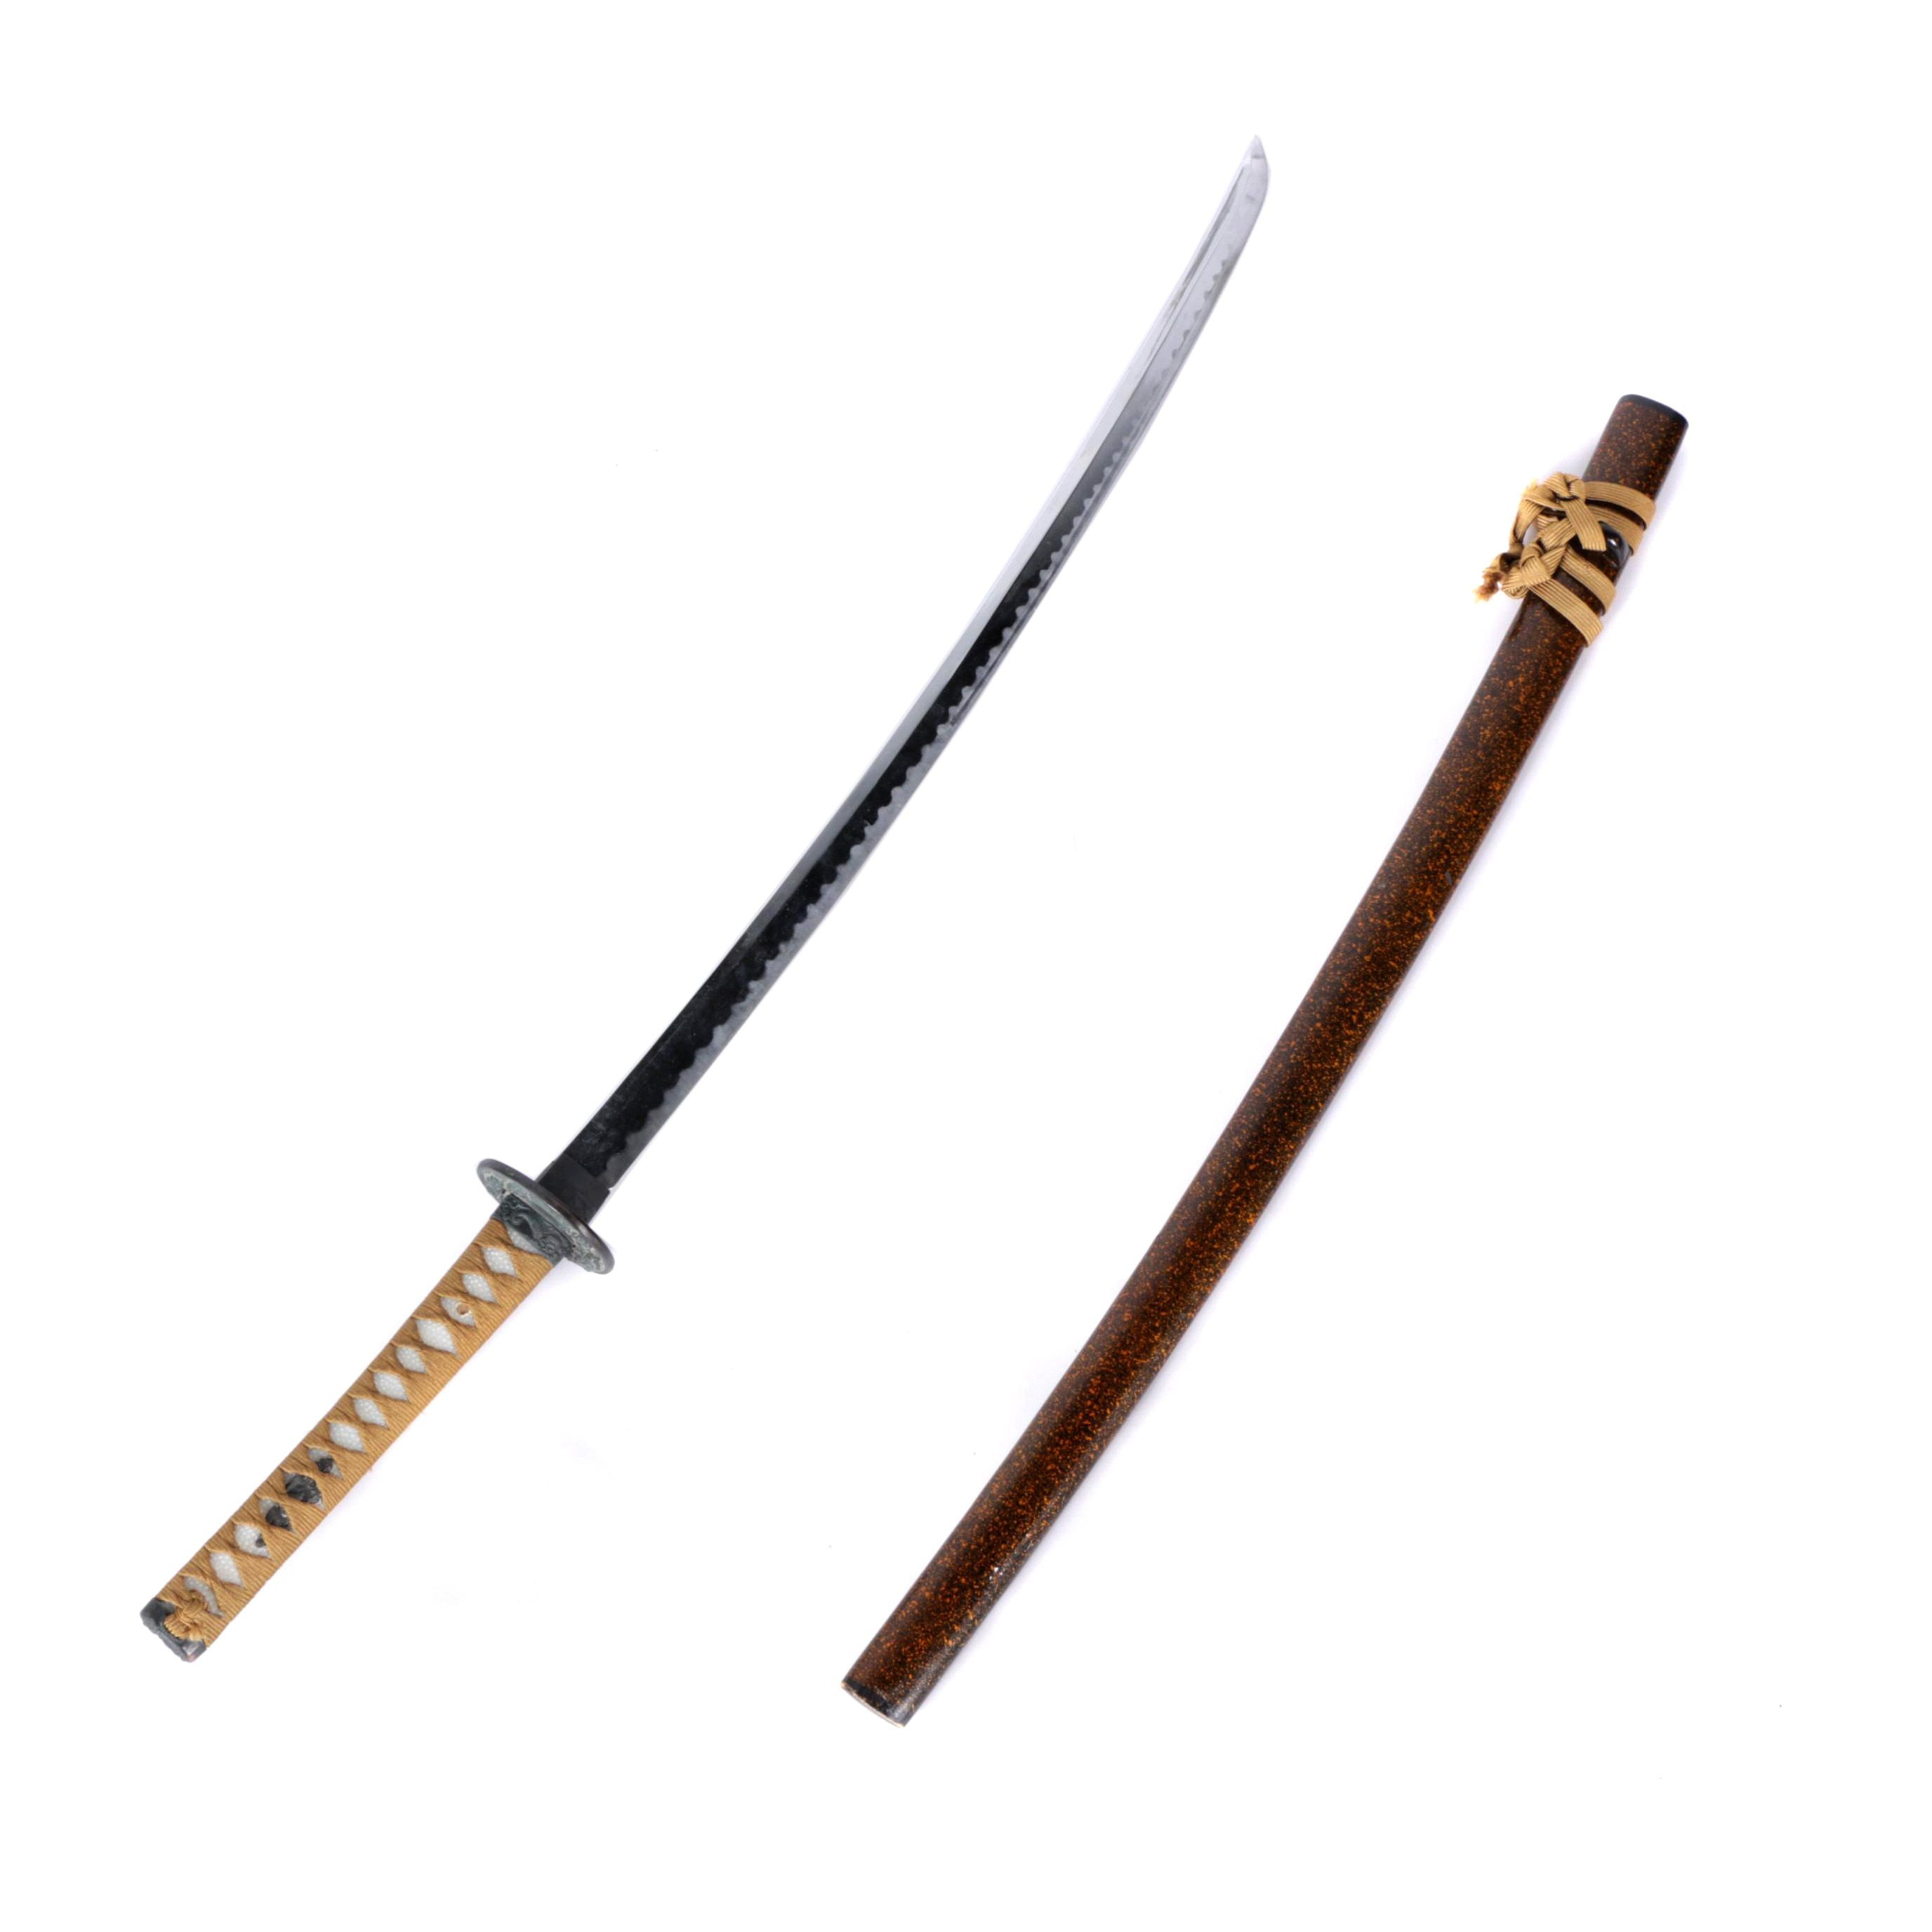 Contemporary Japanese Style Katana Sword with Wooden Scabbard